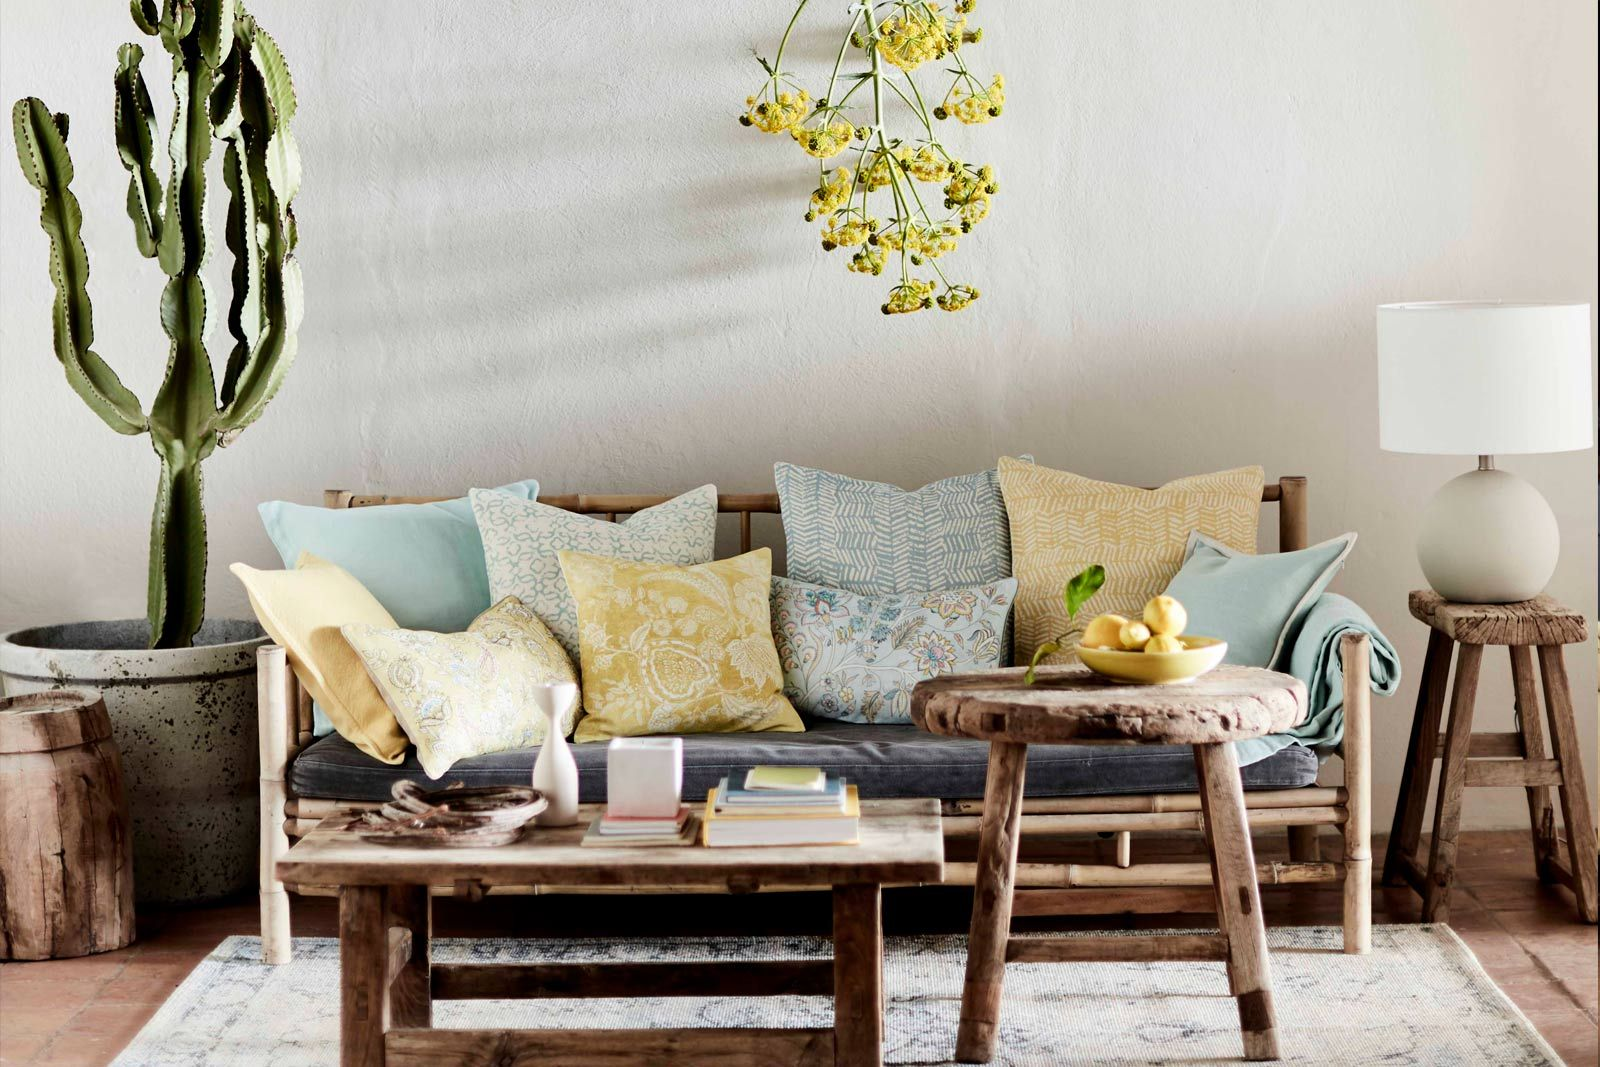 Muebles Zara Linen Colorist La Nouvelle Collection Zara Home été 2018